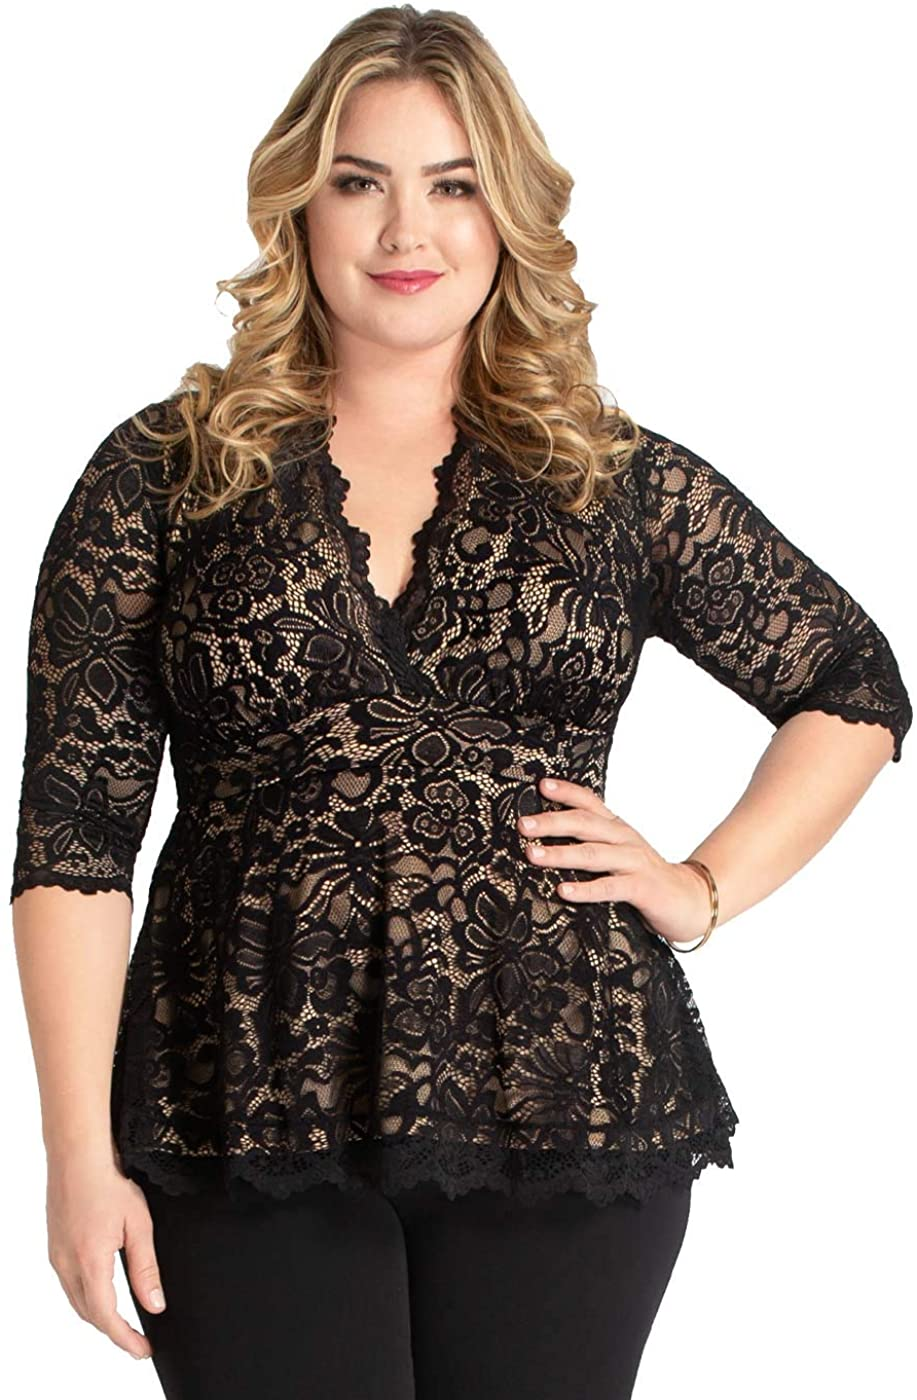 Plus Size Mix & Match Tops & Bottoms 02